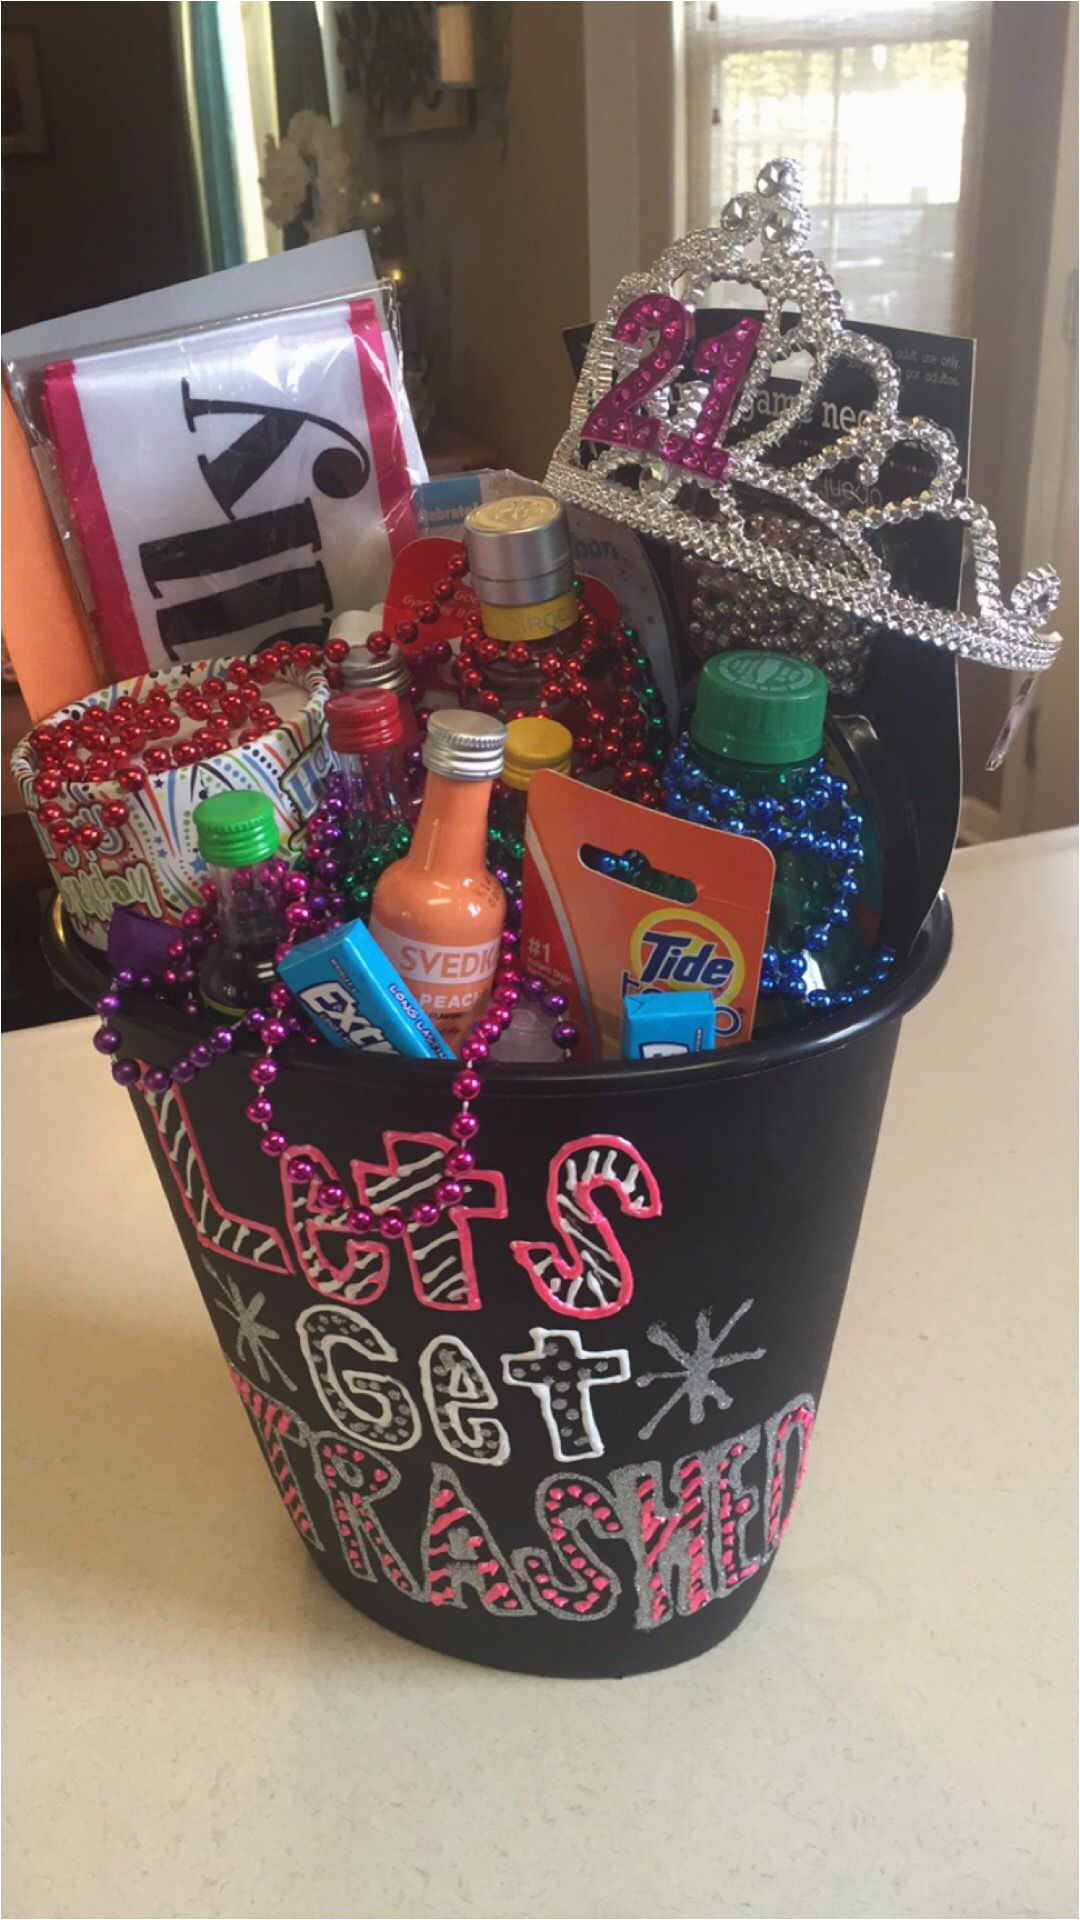 21st Birthday Gift Baskets For Her In A Trash Can Saying Quot Let